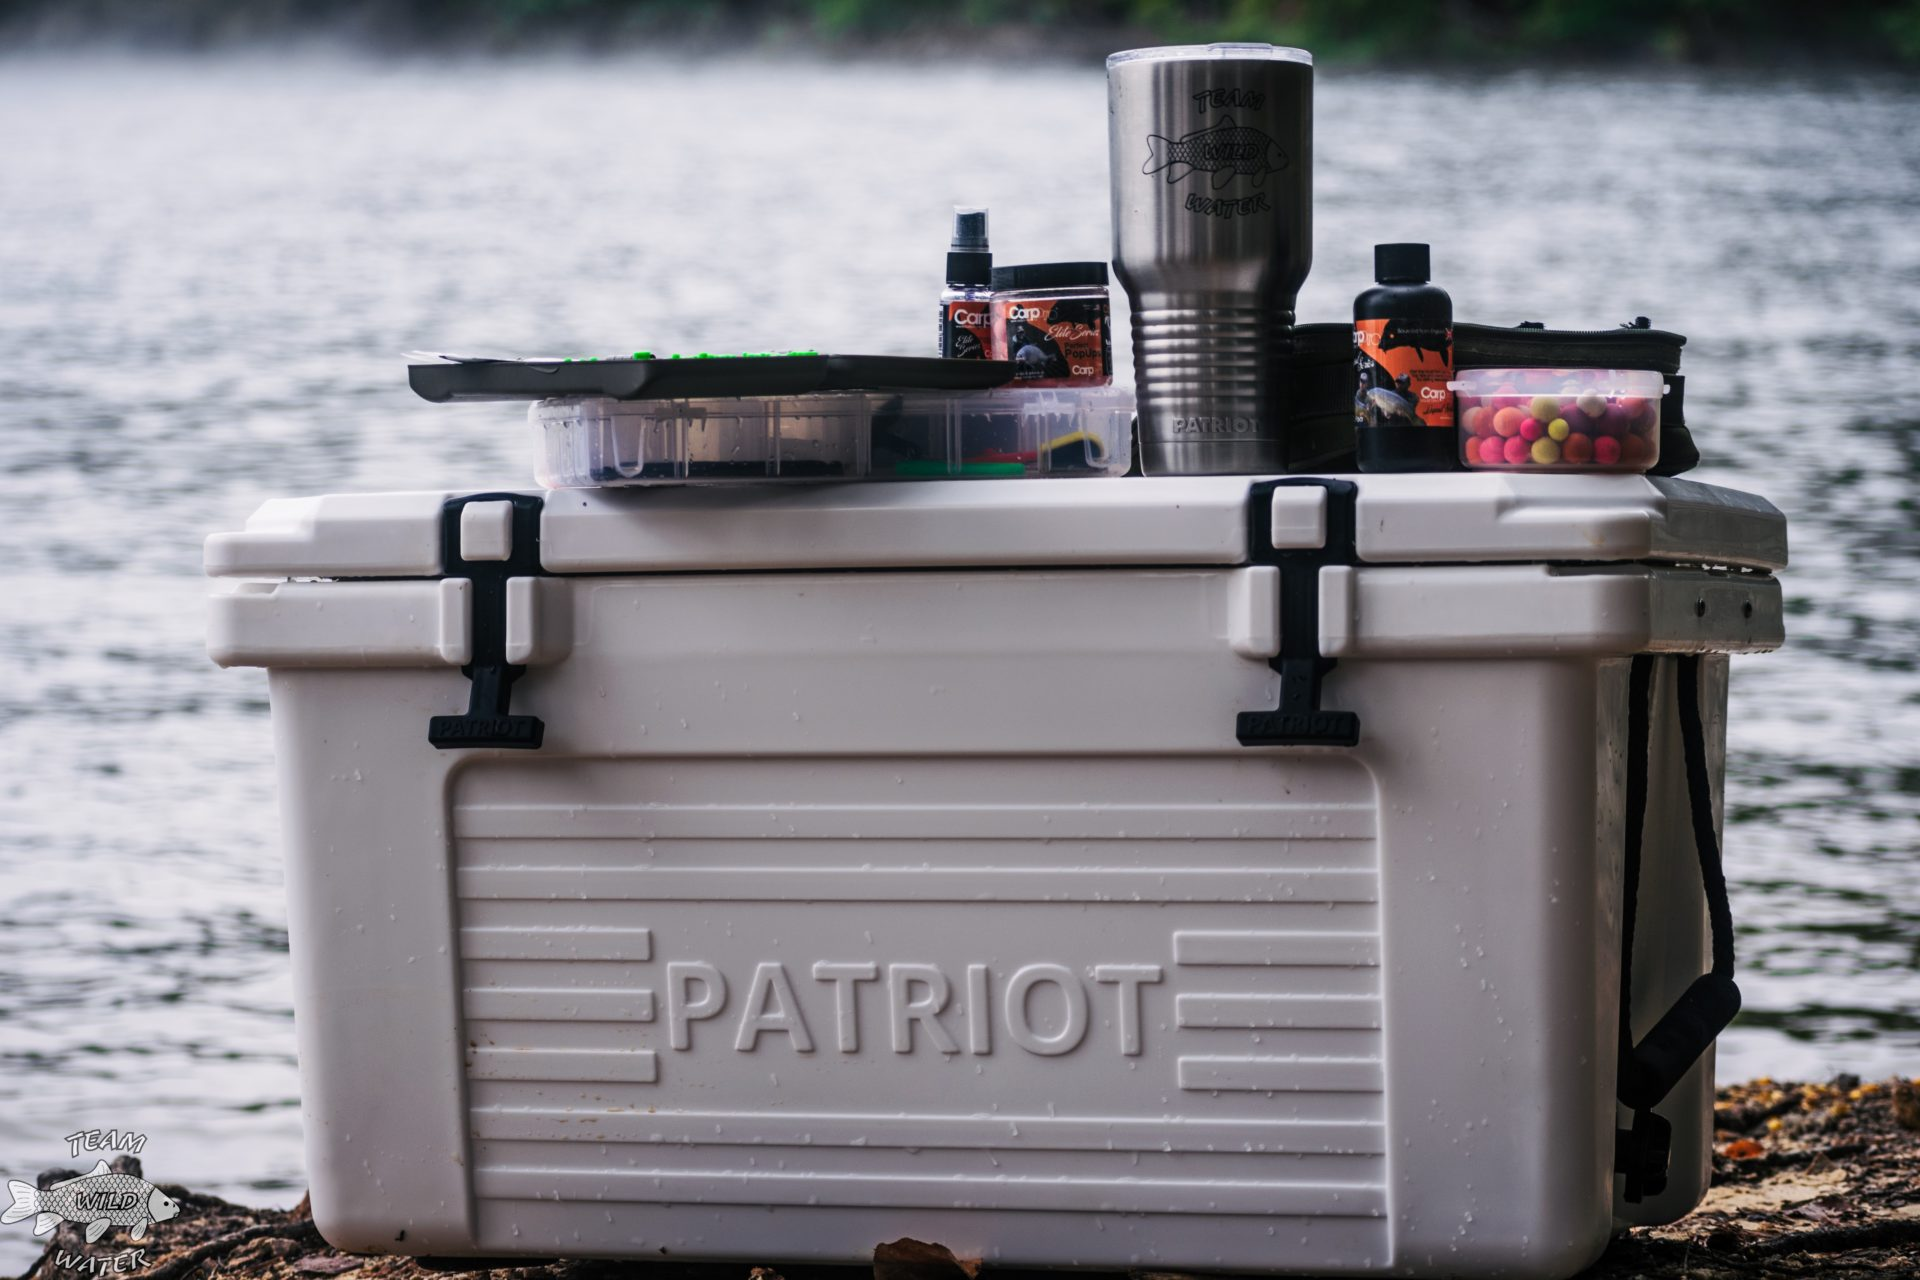 Patriot cooler and tumbler